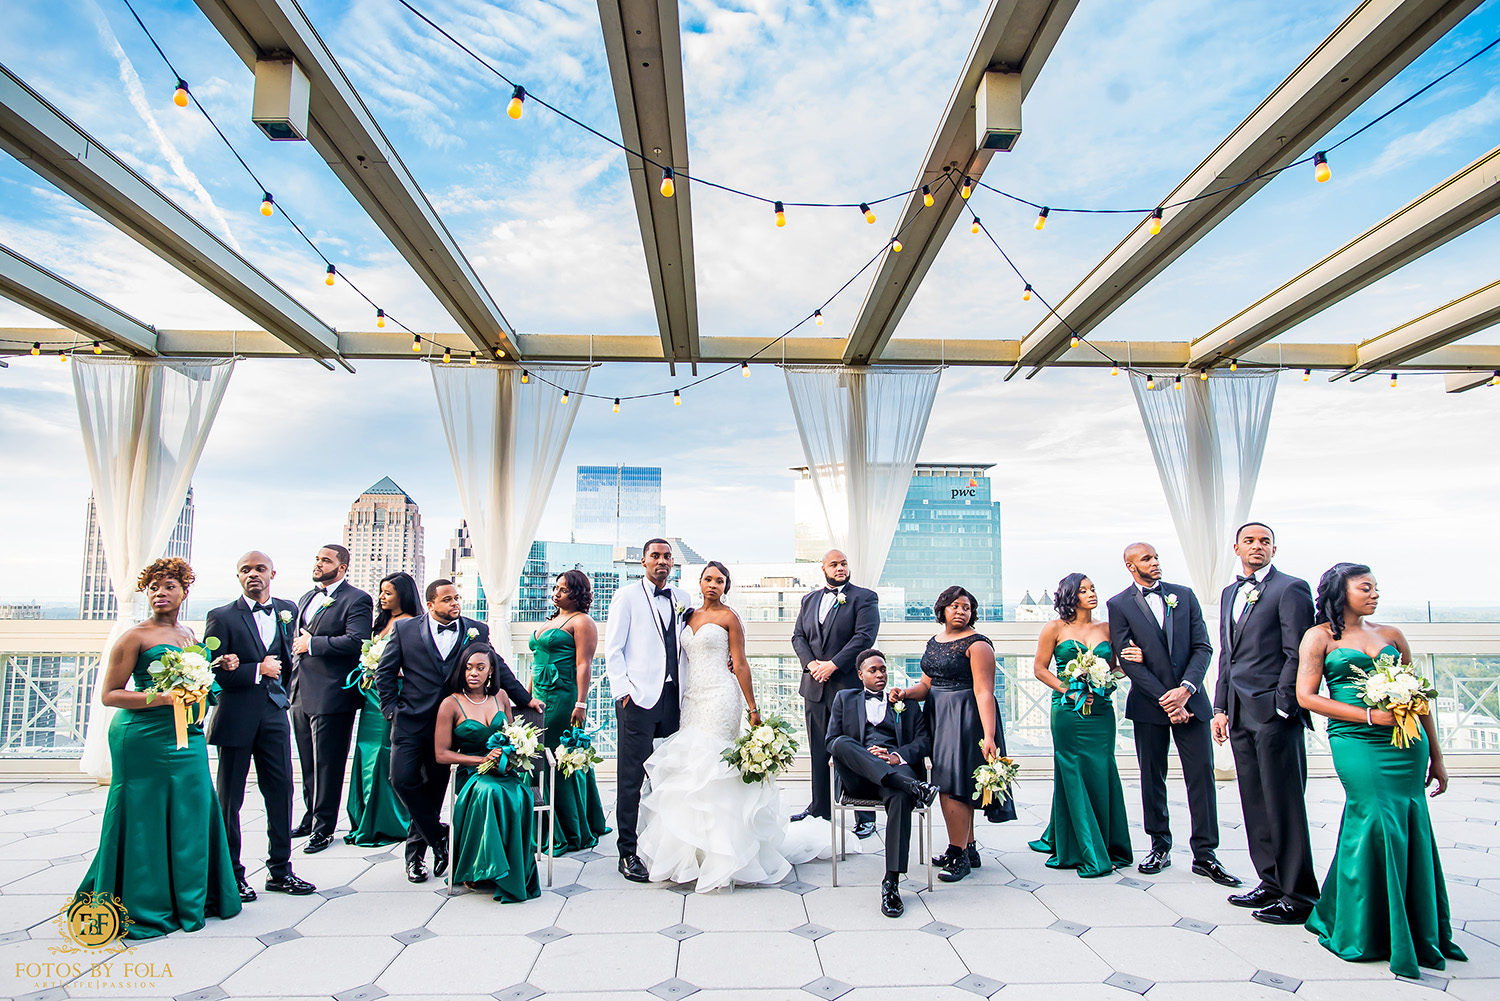 10. Fotos by Fola | Atlanta Wedding Photographer | Peachtree Club Wedding